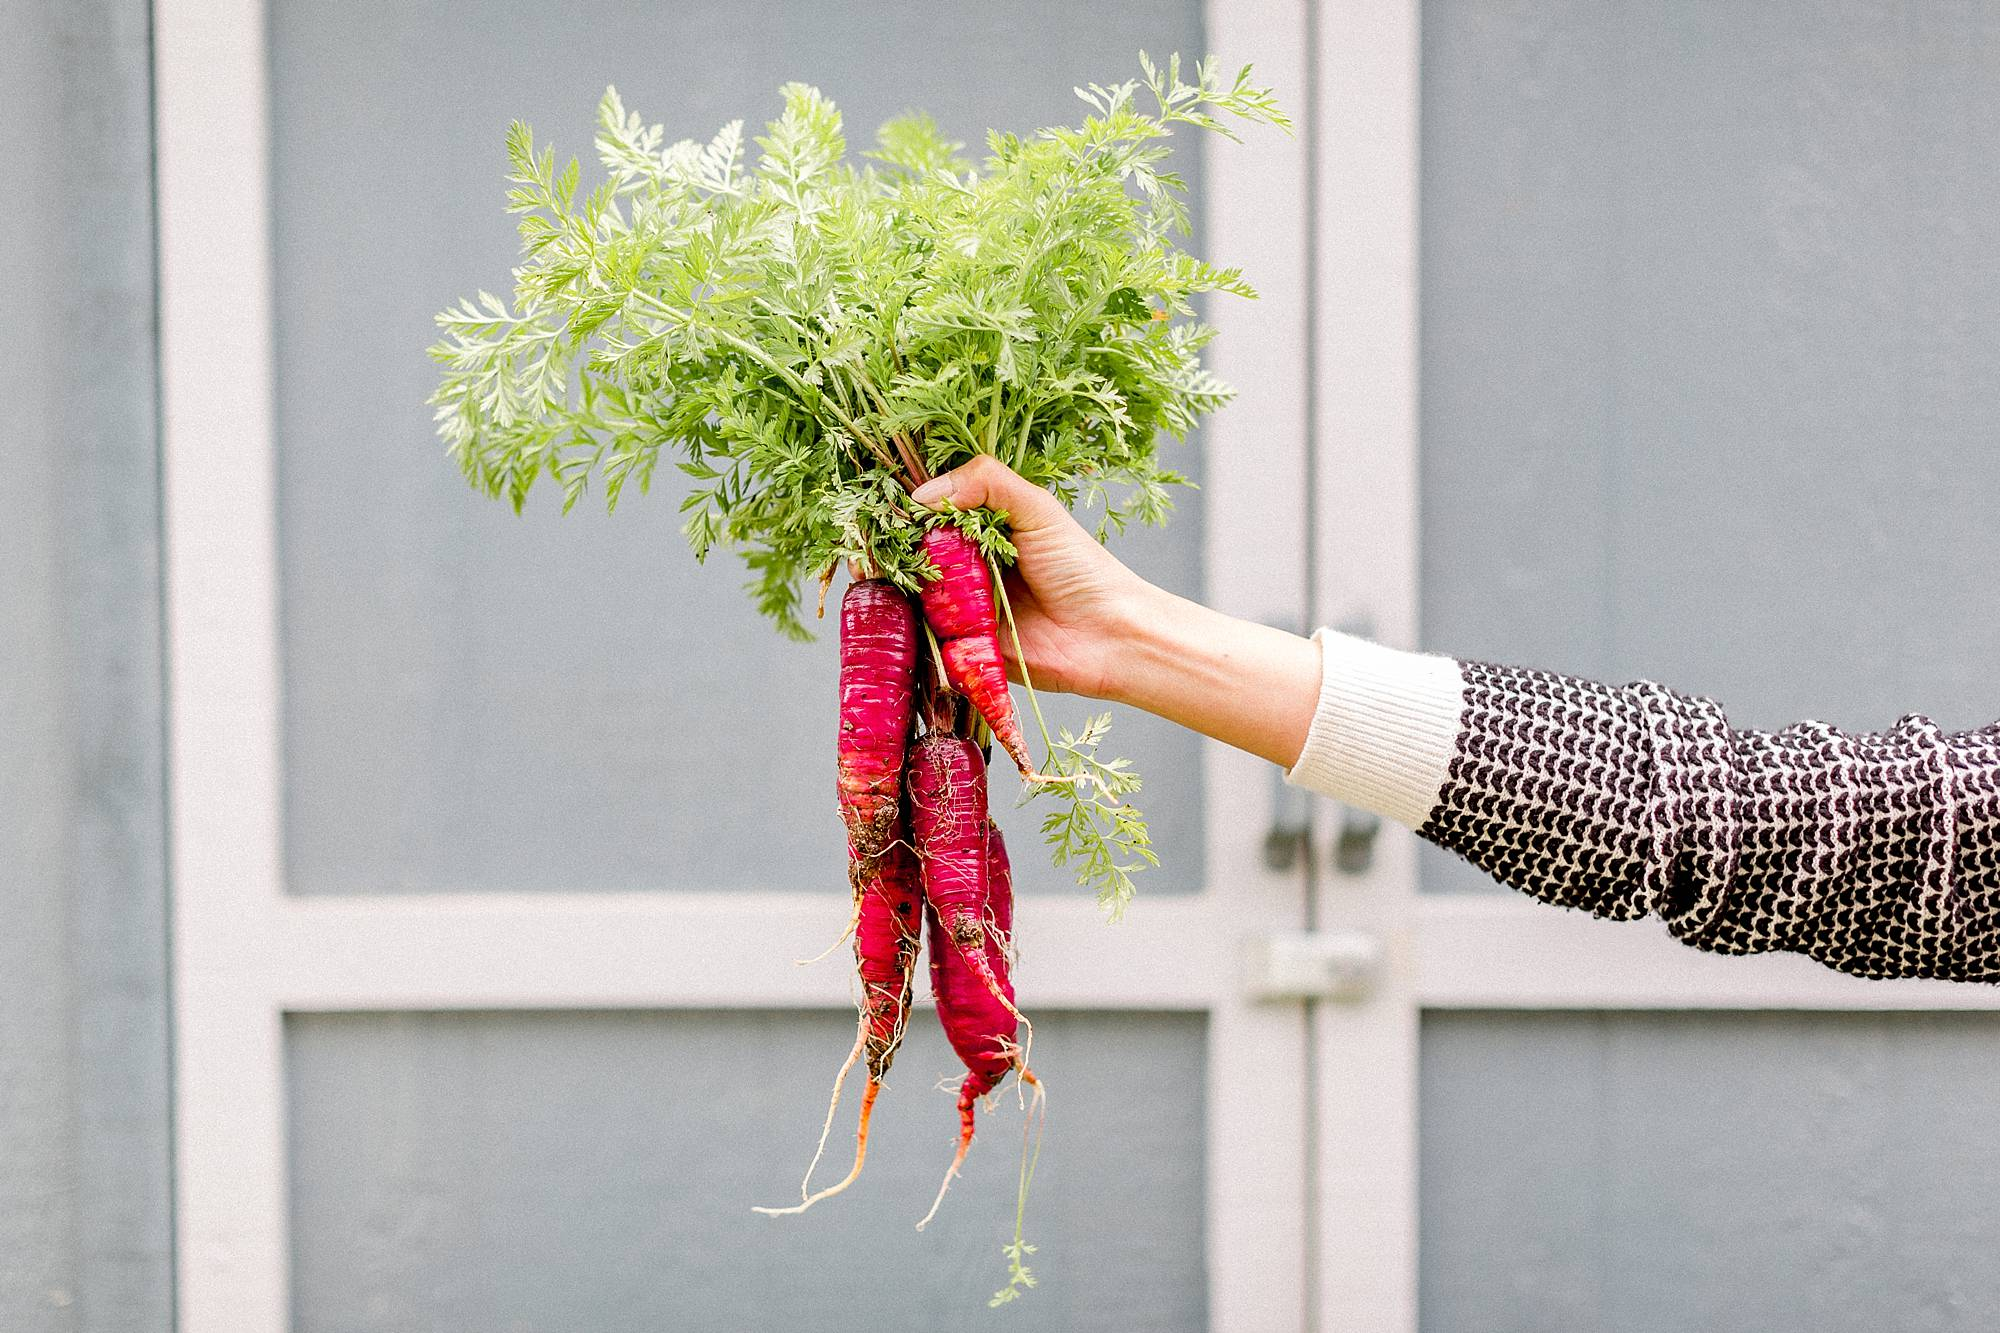 holding purple carrots winter harvest from garden #garden #gardenbeds